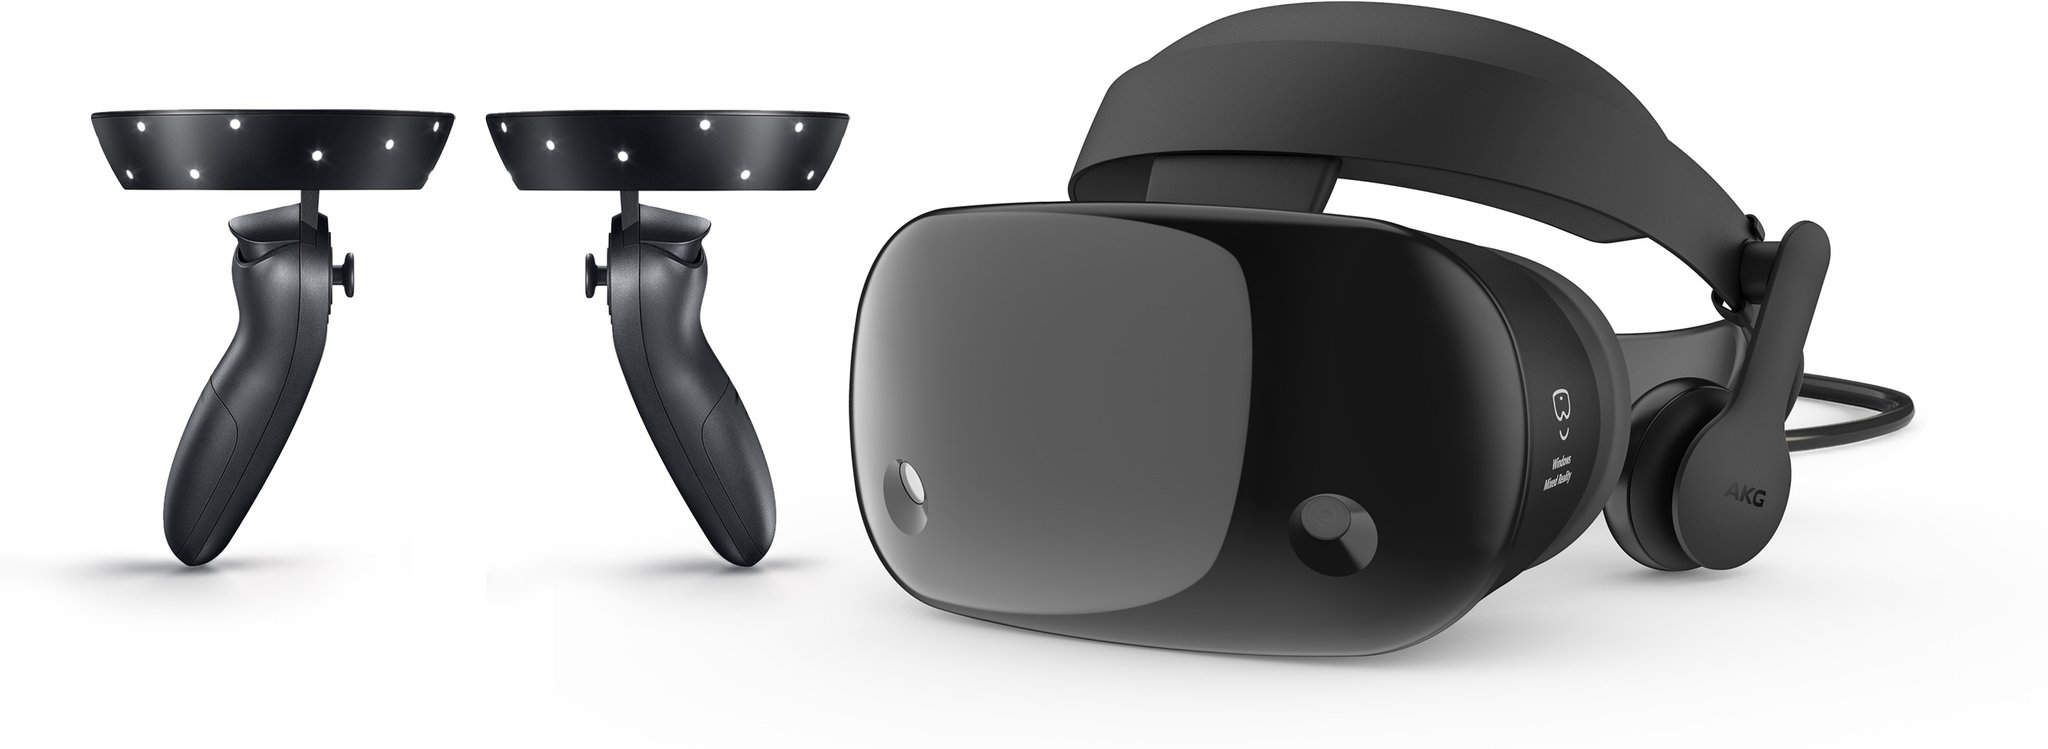 New Images of Samsung's Windows 10 Mixed Reality Headset vr porn blog virtual reality